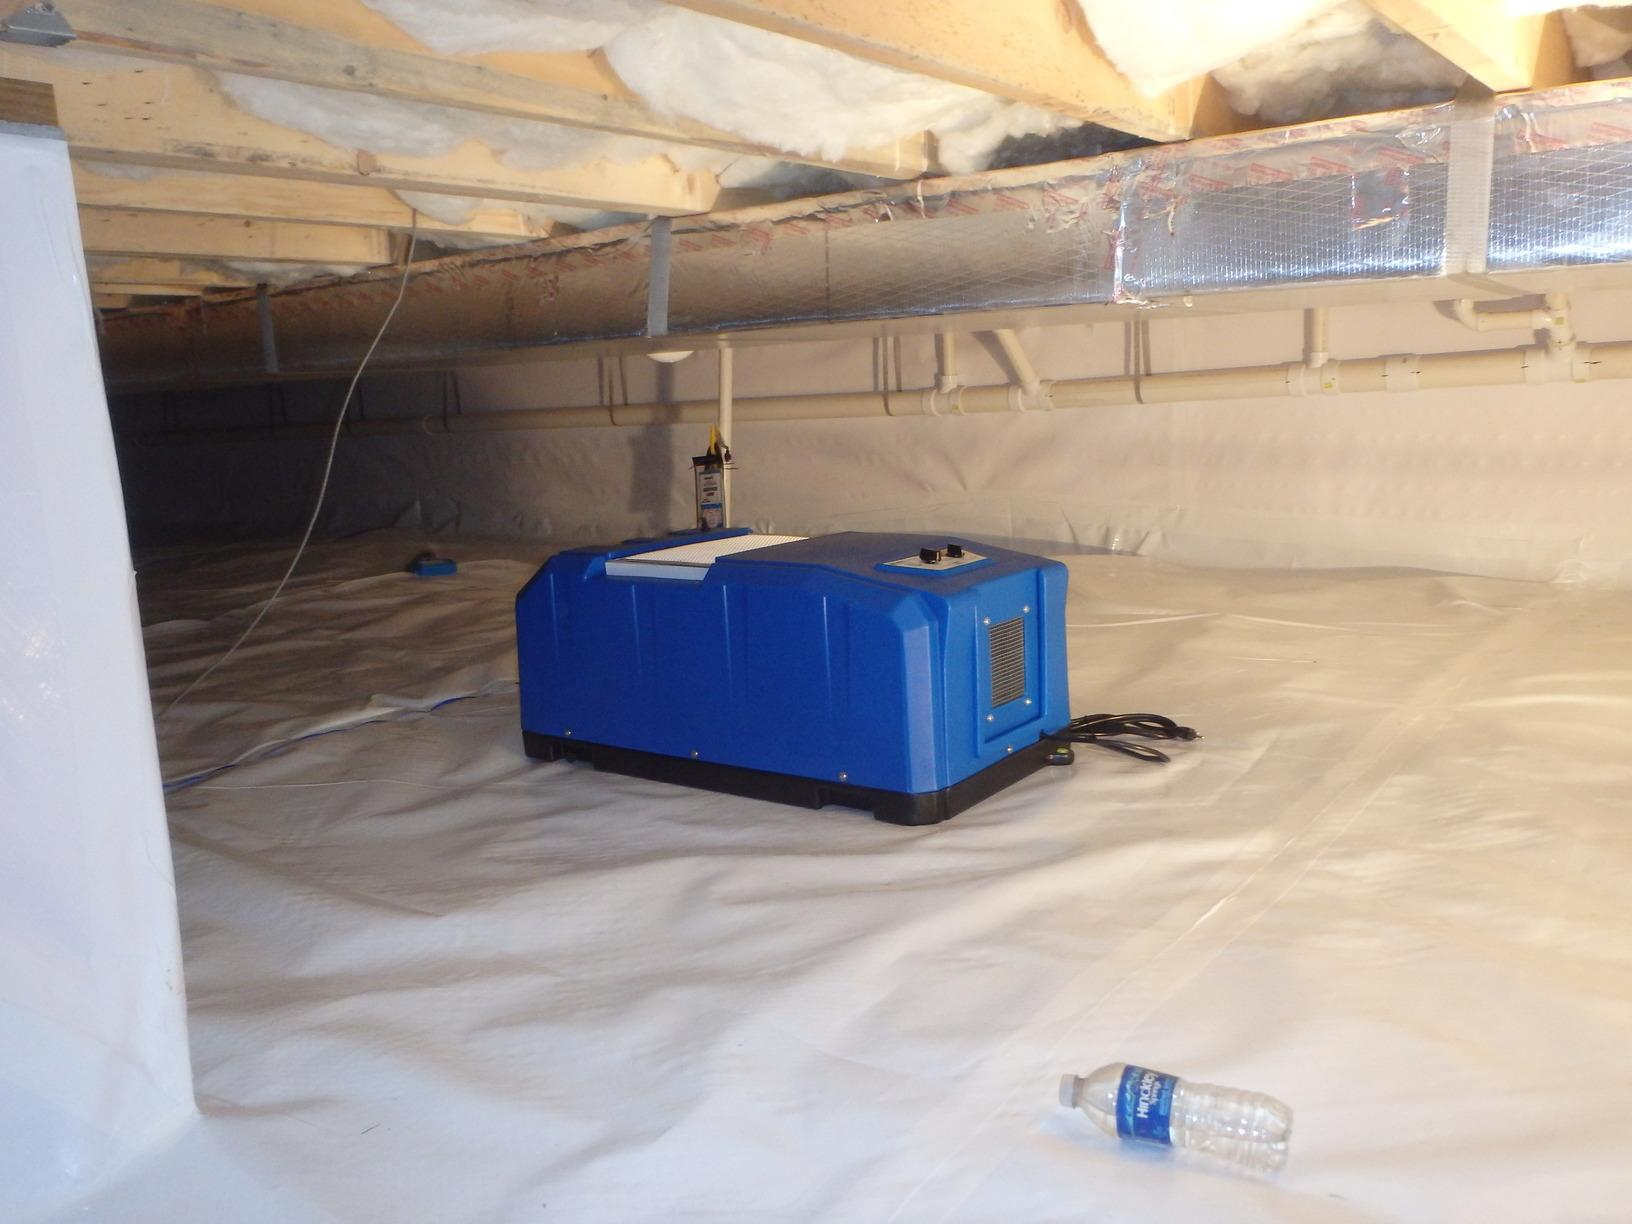 SaniDry Dehumidifier Install in the Crawl Space